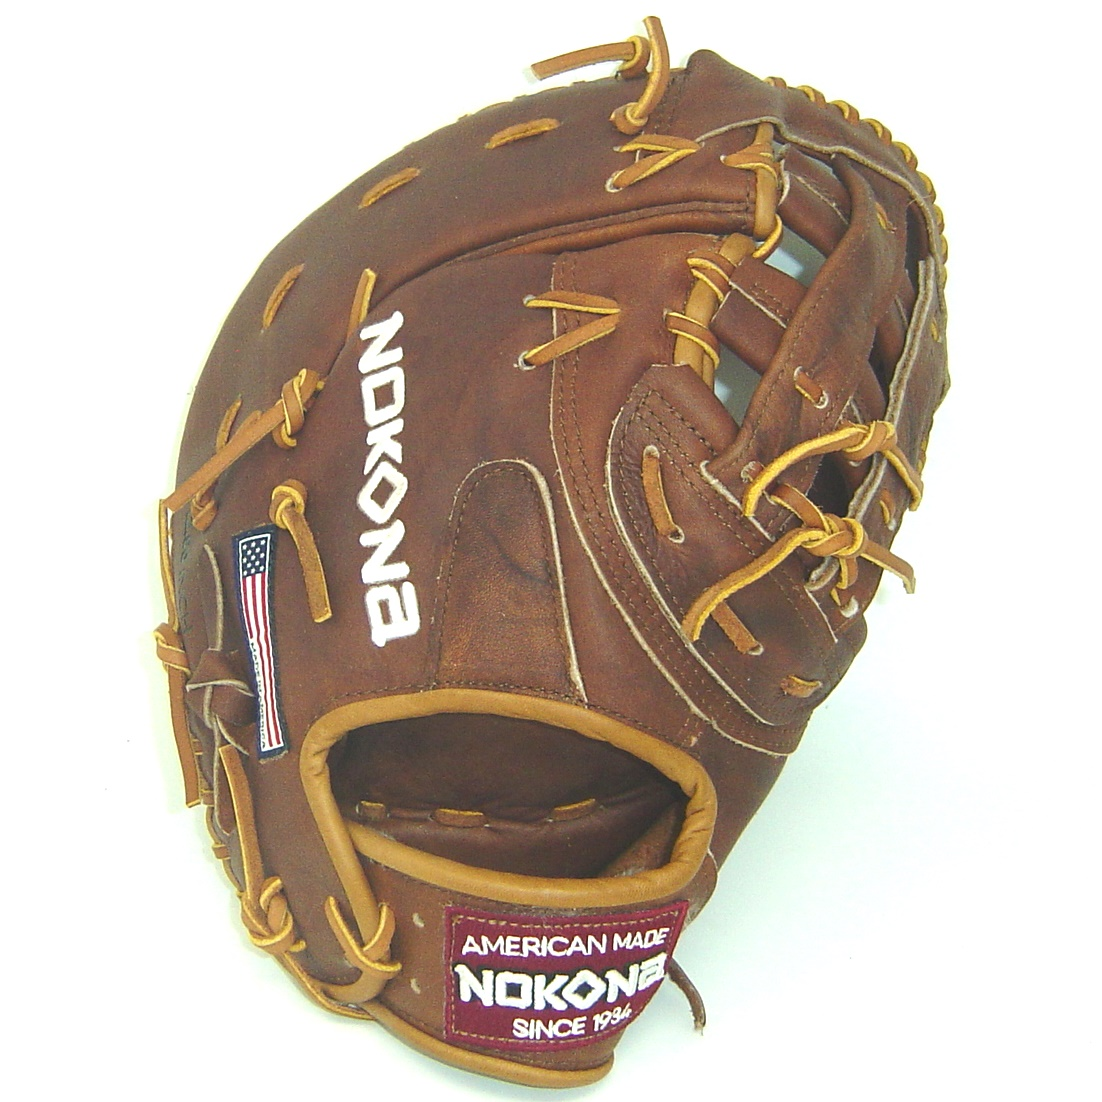 nokona-walnut-w-n70-first-base-glove-13-inch-right-hand-throw W-N70H-RightHandThrow Nokona 808808892823 <p style=margin 0px 0px 10px; color #000000; text-transform none; text-indent 0px;